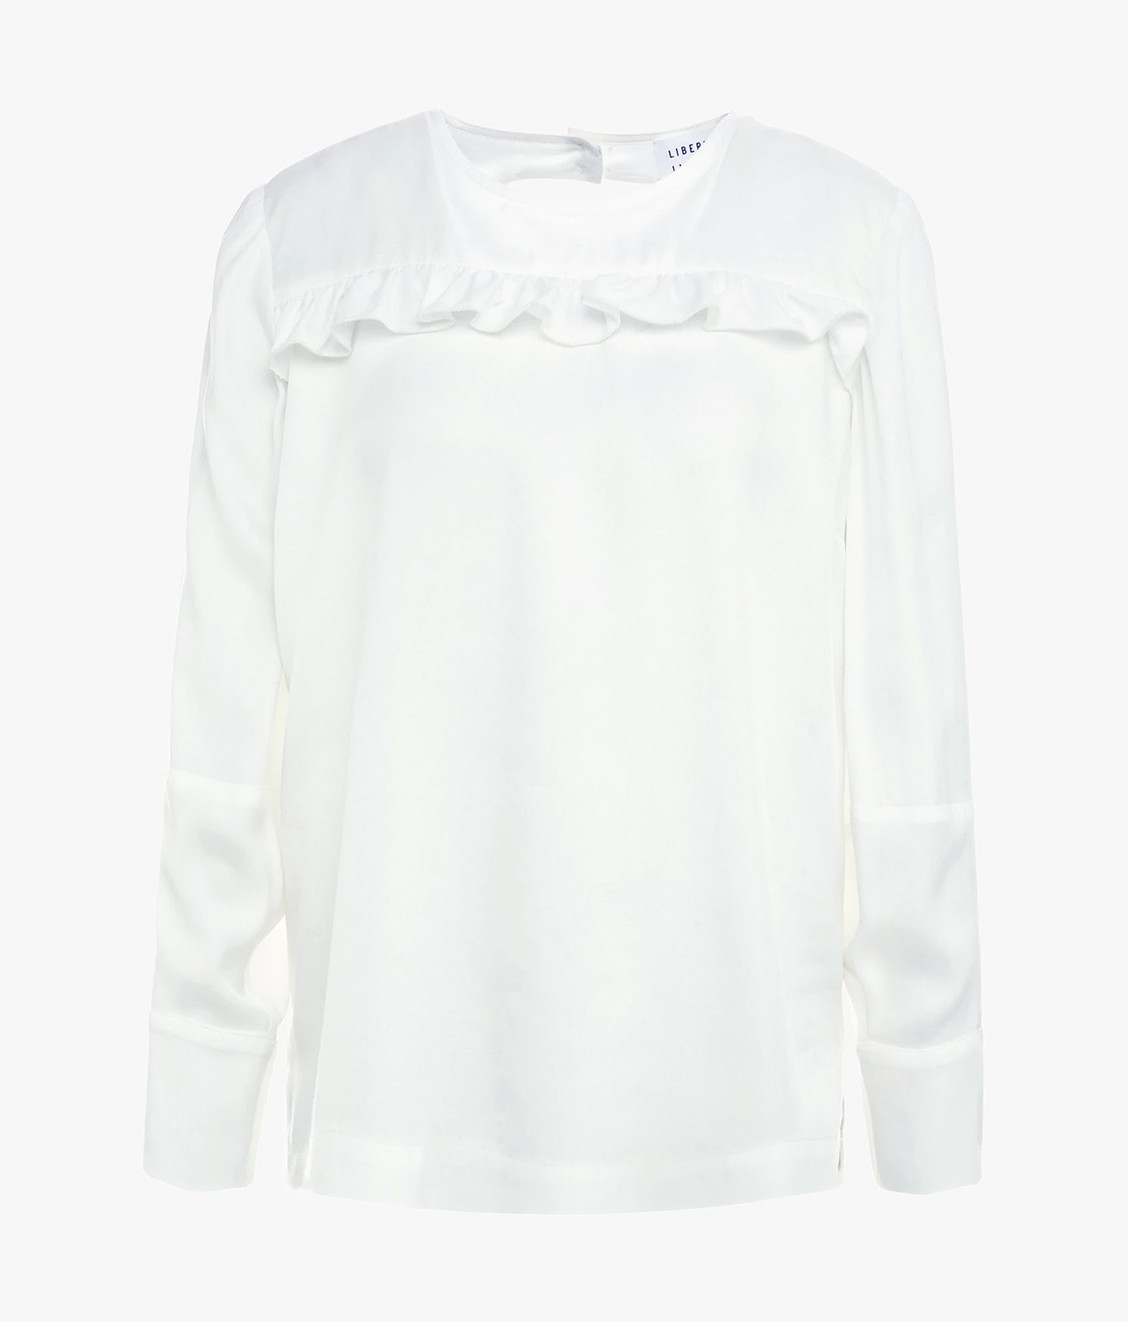 Libertine Libertine Libertine-Libertine One Top White